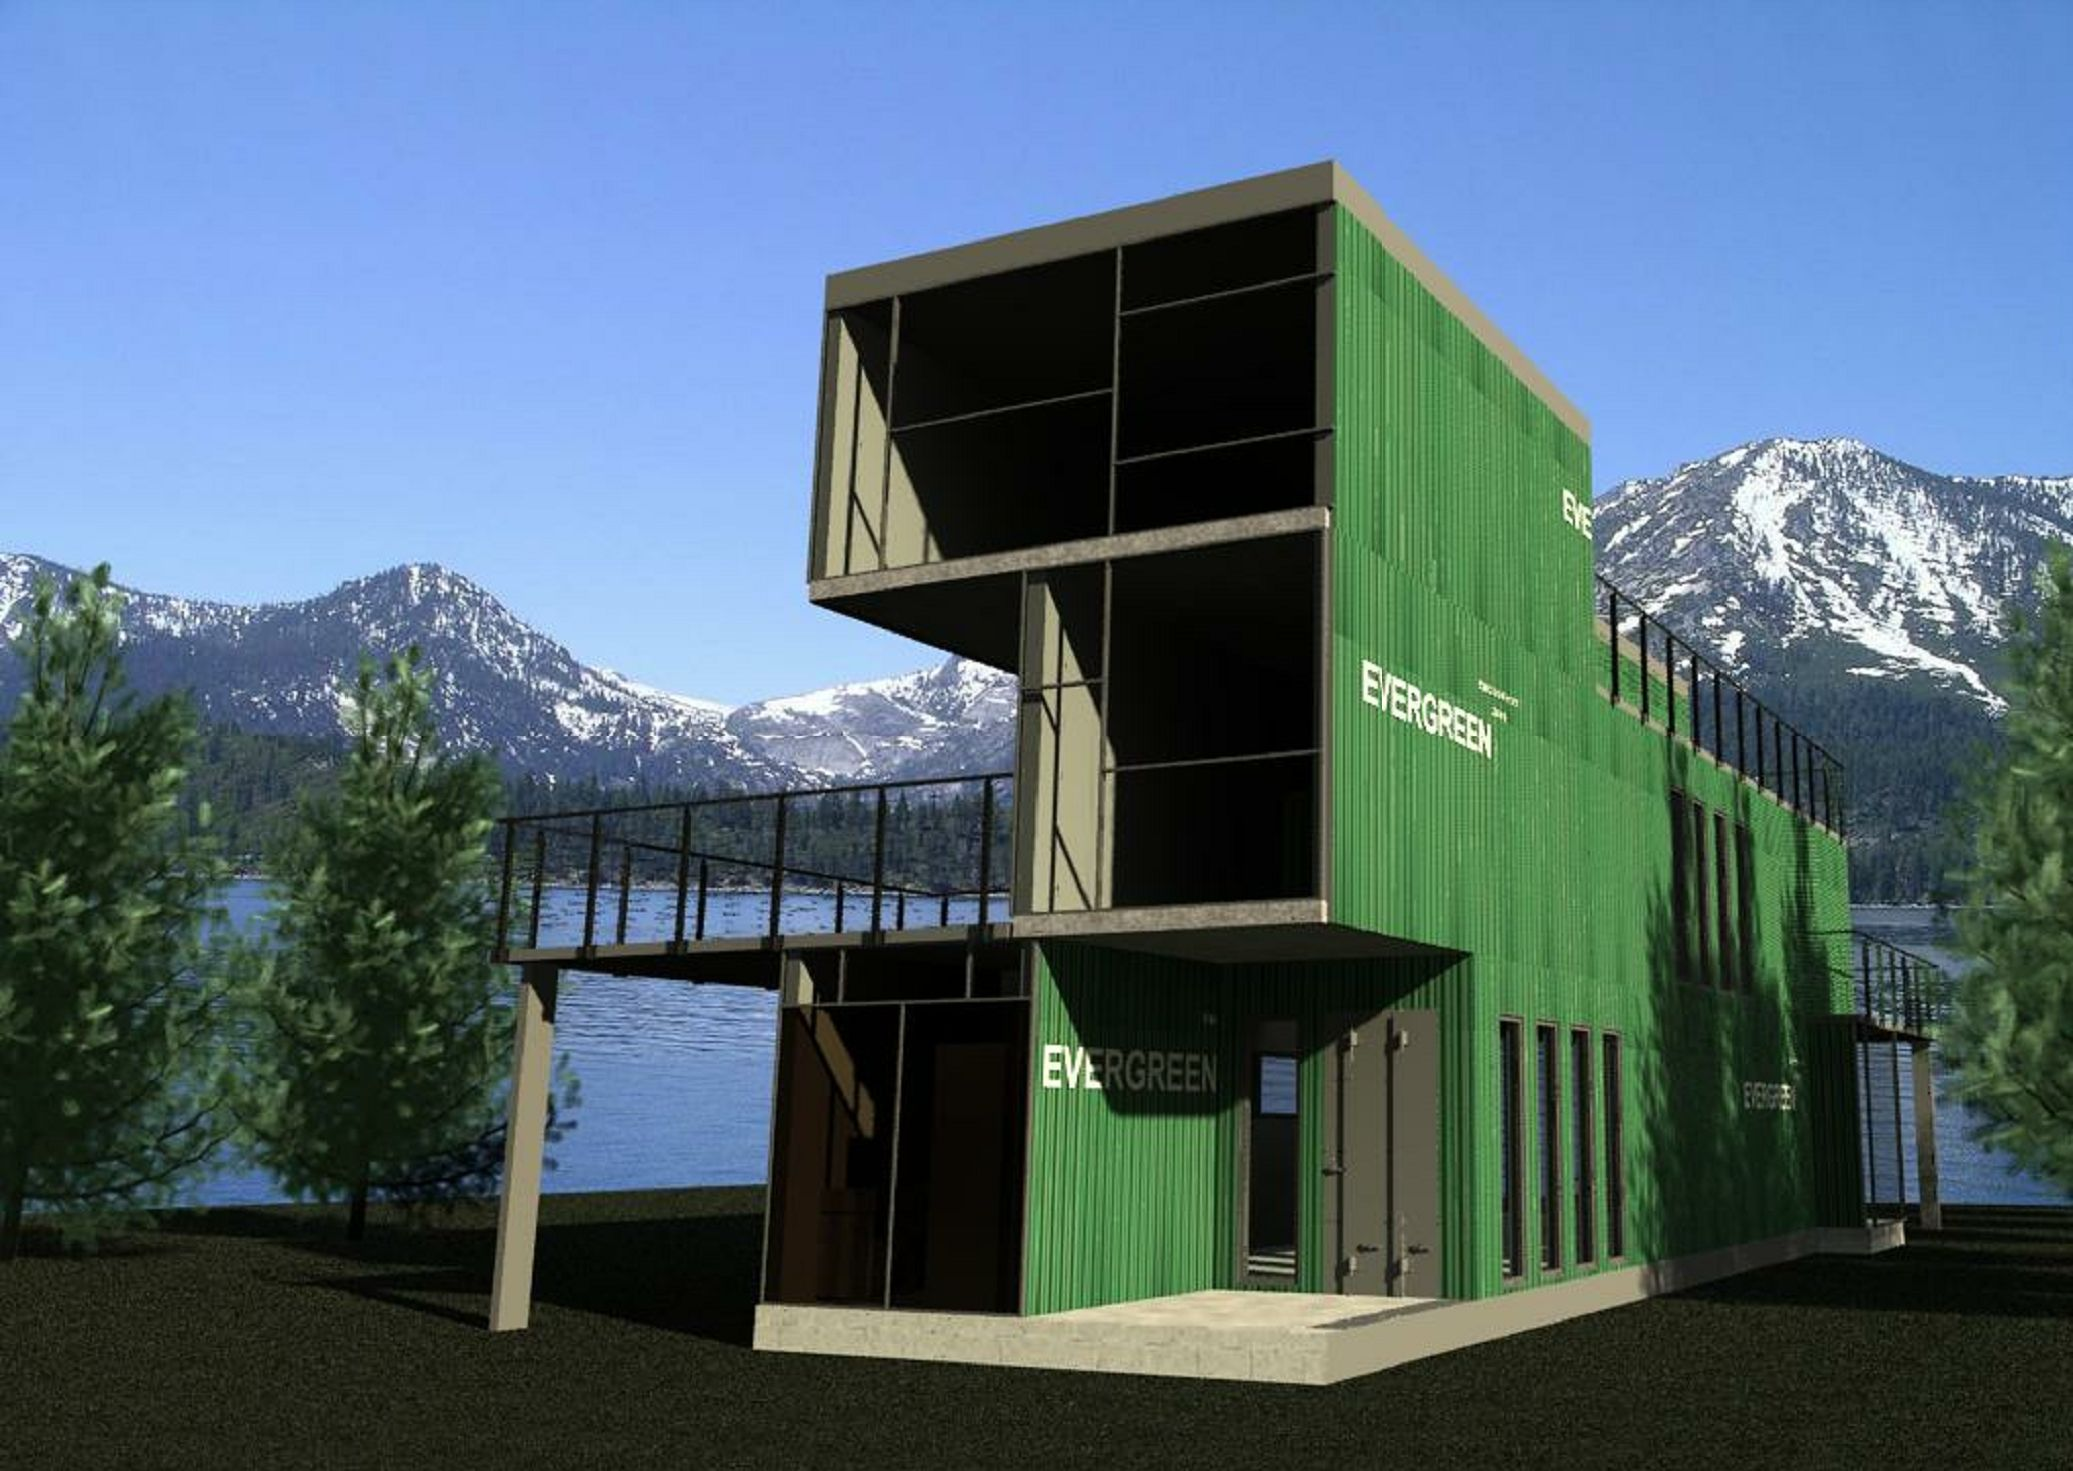 Charmant Image Of Unique! Large Shipping Containers Turns Into Luxurious And Comfy  Homes